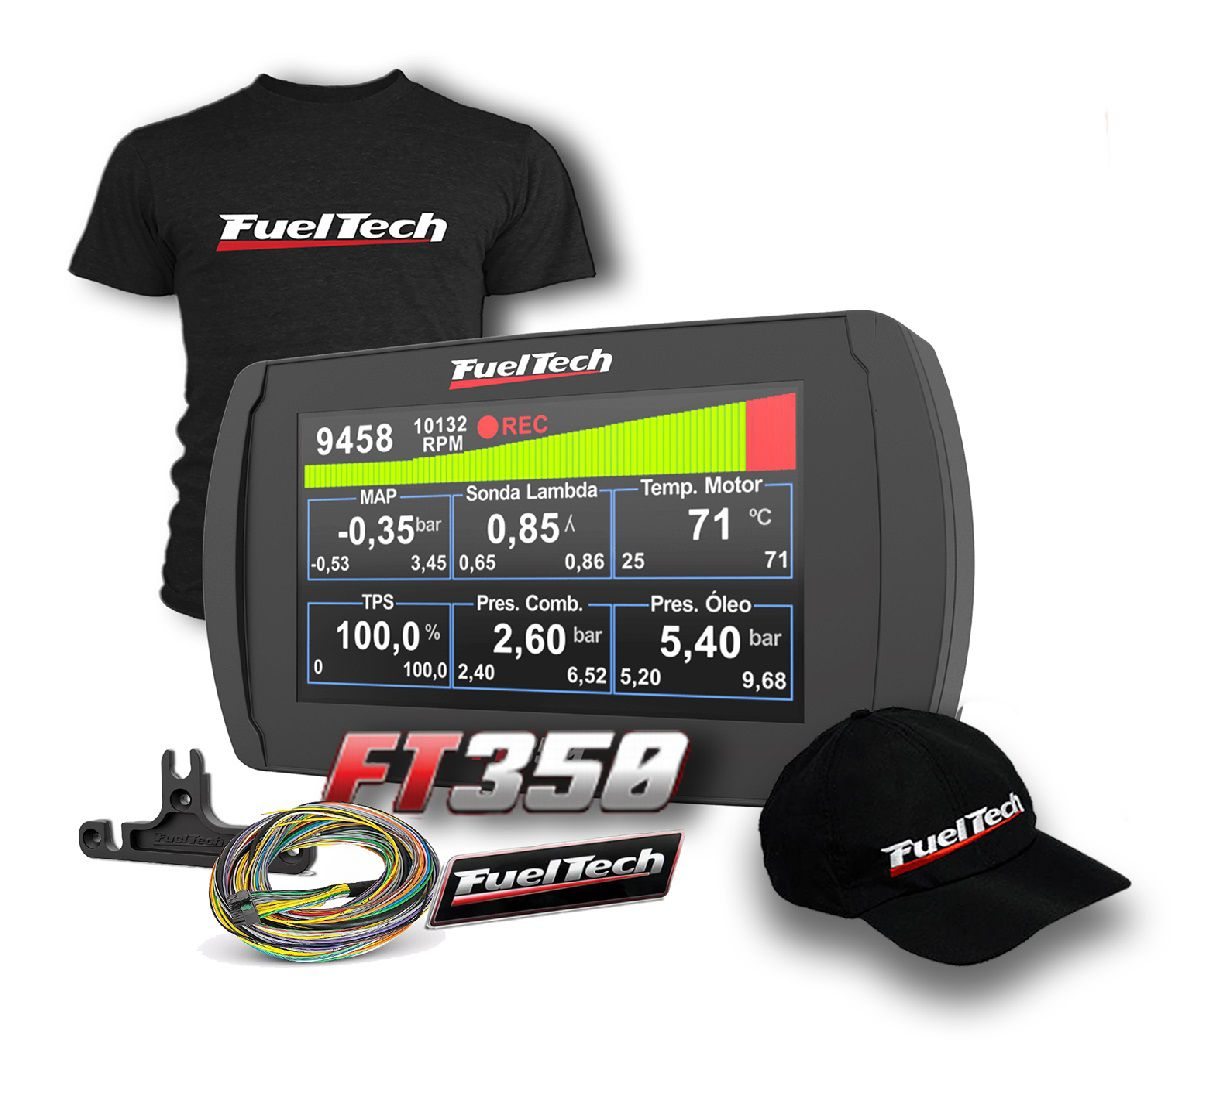 Fueltech FT 350 + camiseta  + bone